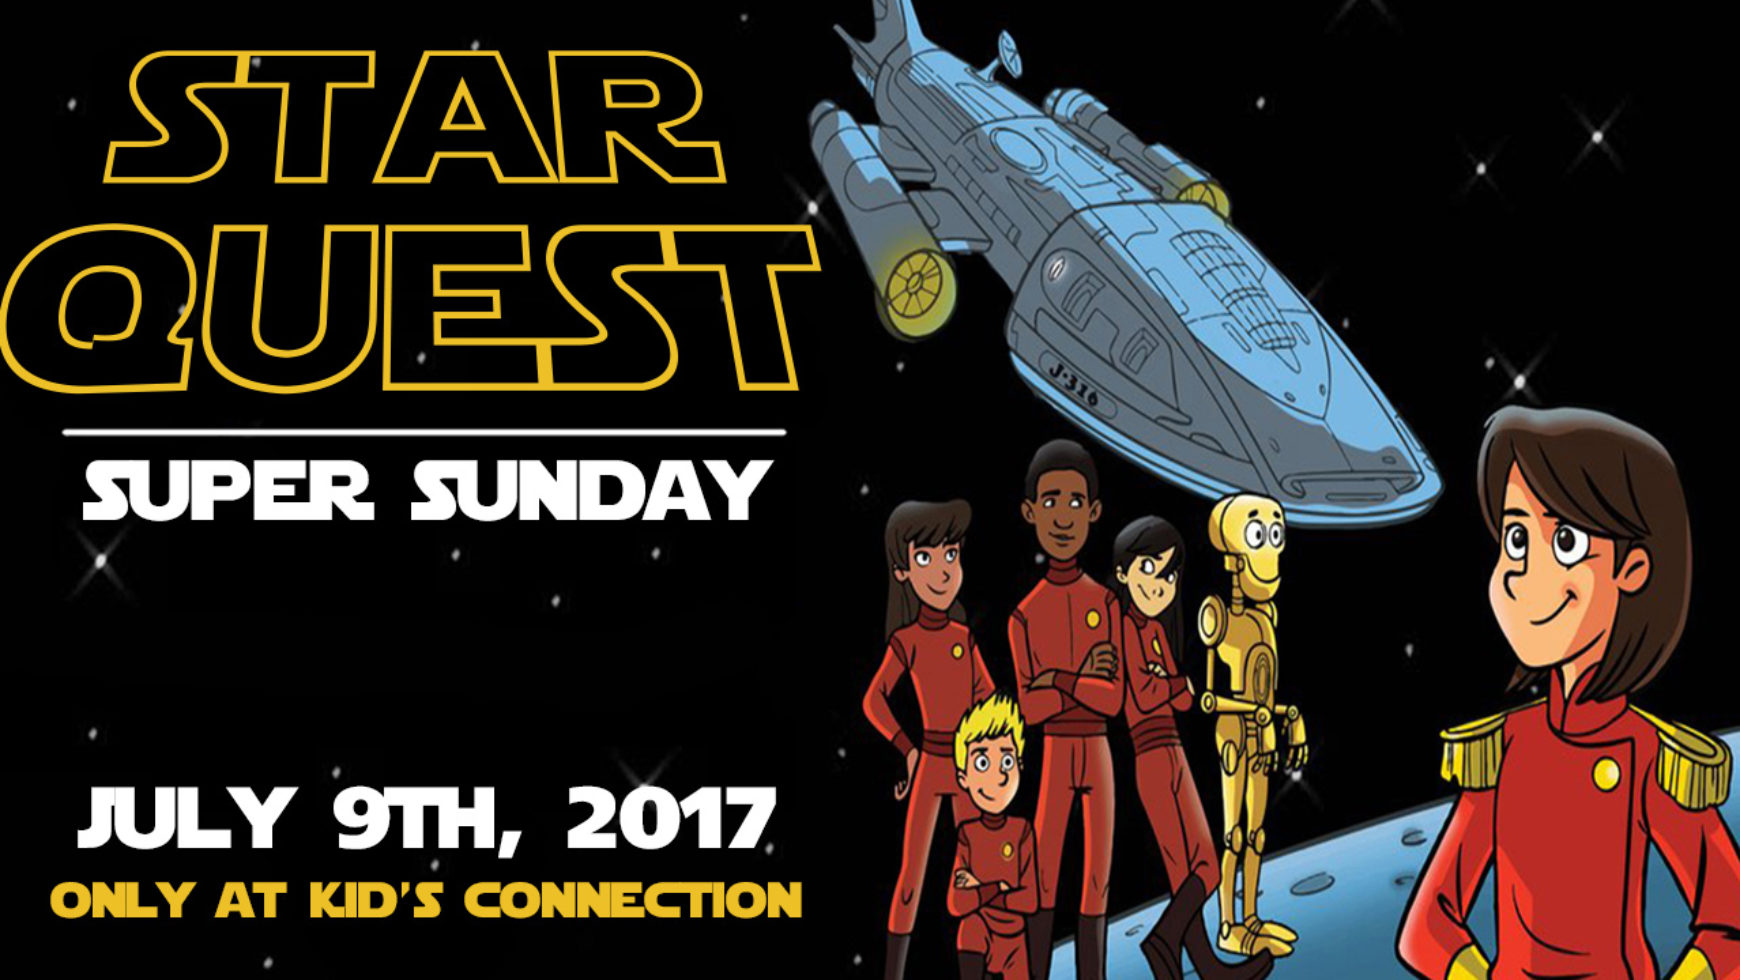 Star Quest: Super Sunday